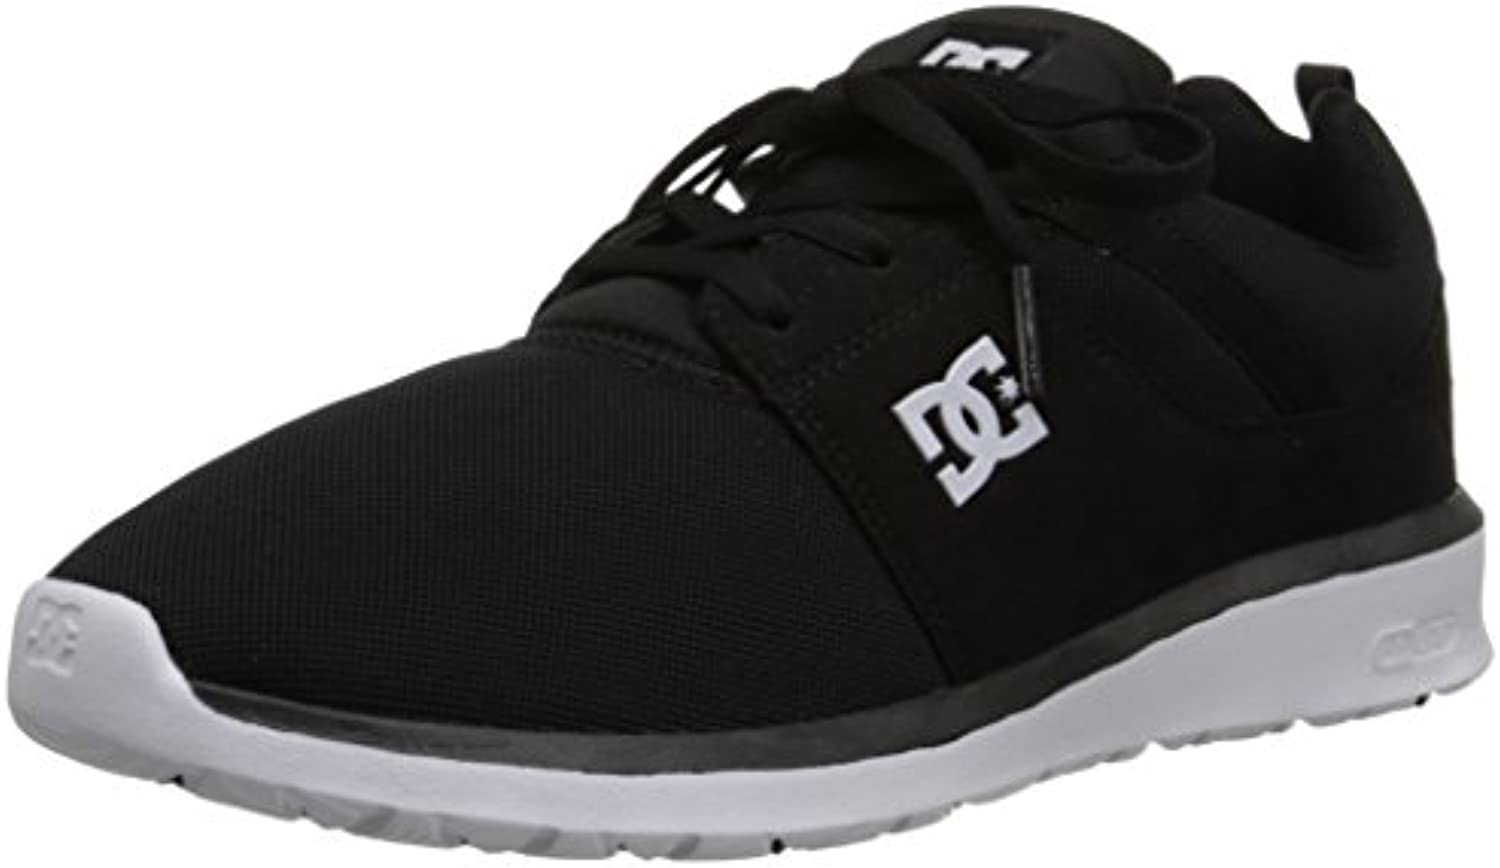 DC     Herren Heathrow Schuh  Black/White  48.5 EU